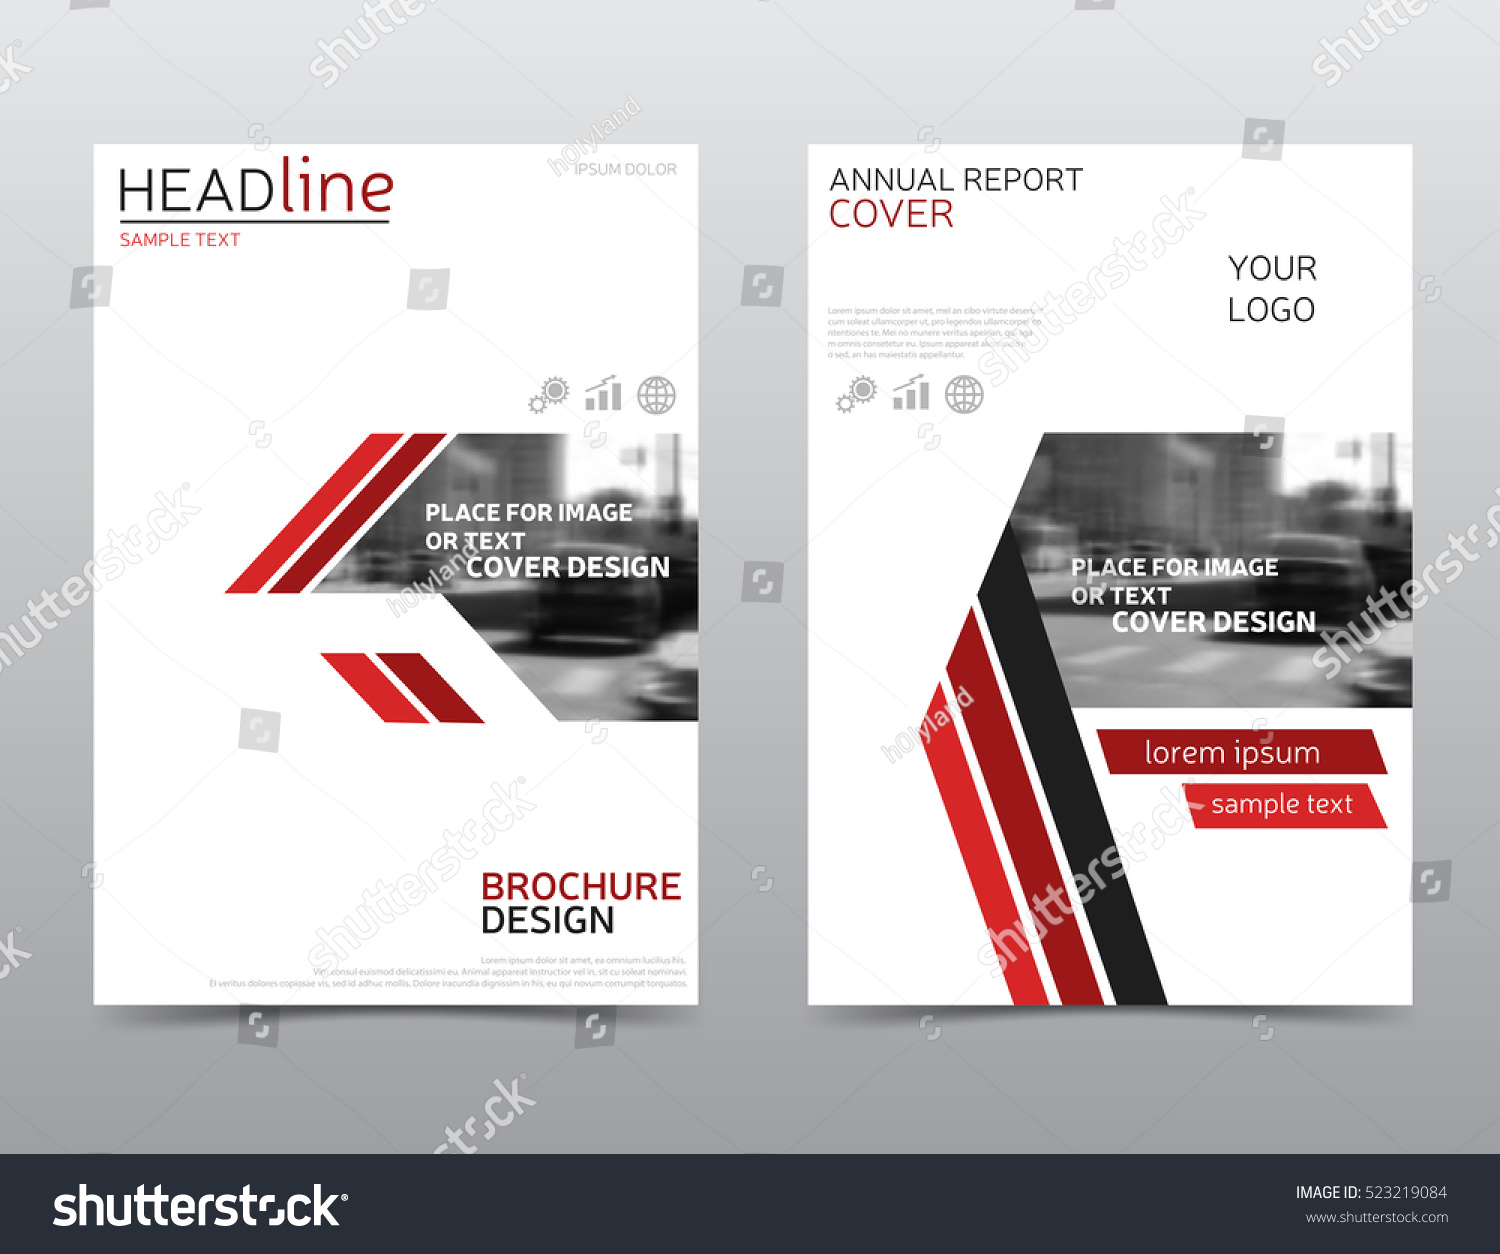 White red brochure design technology annual stock vector for Red brochure template